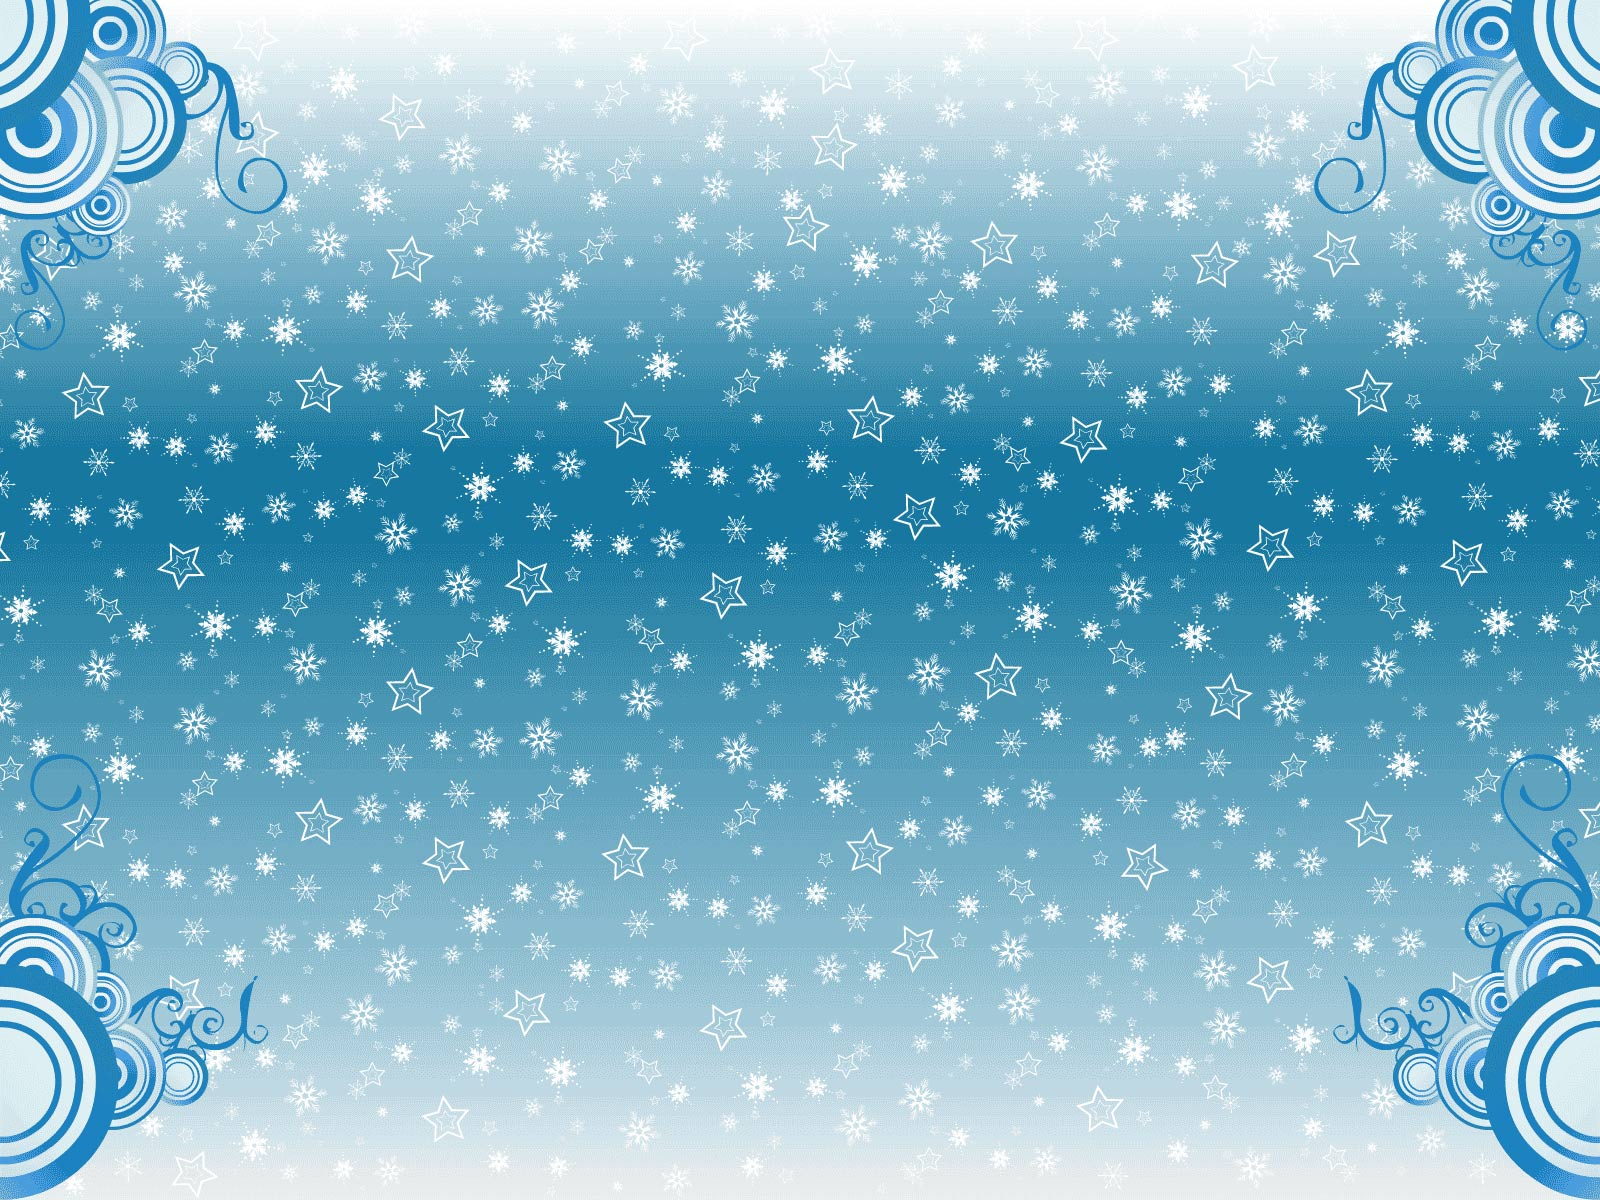 Get Background winter Desktop Wallpaper and make this wallpaper 1600x1200